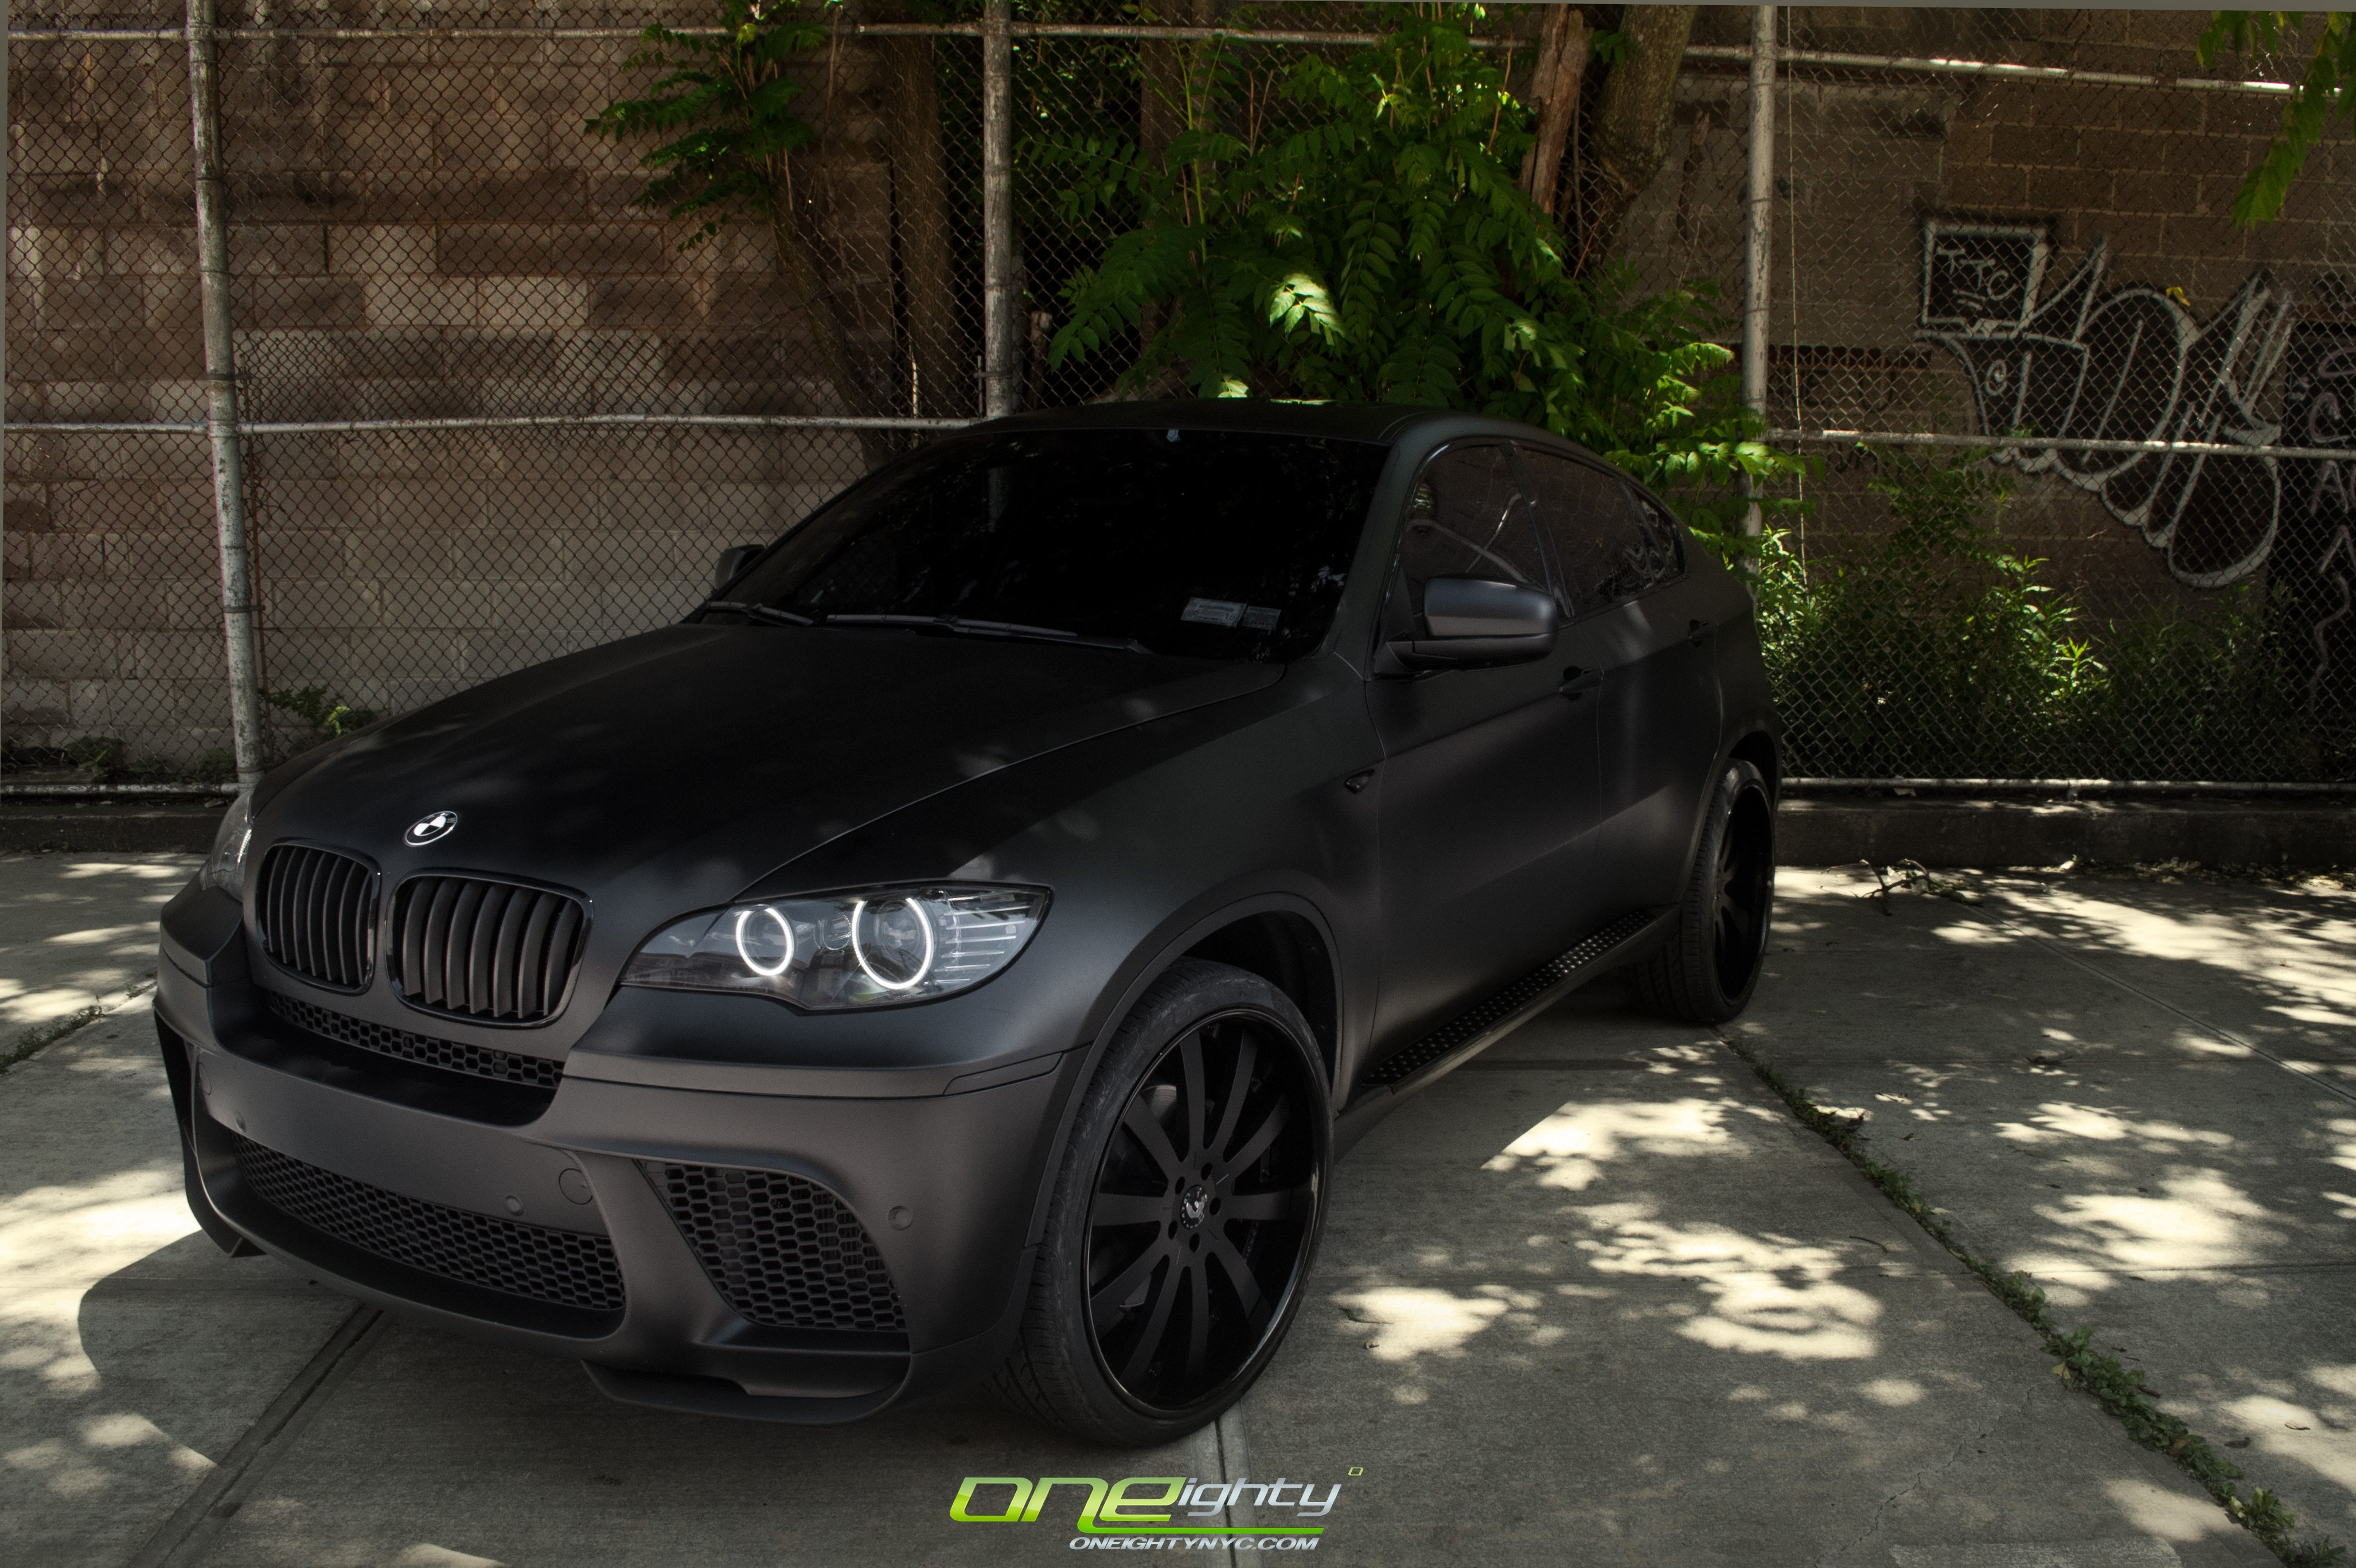 Custom 2013 Bmw X6 Images Mods Photos Upgrades